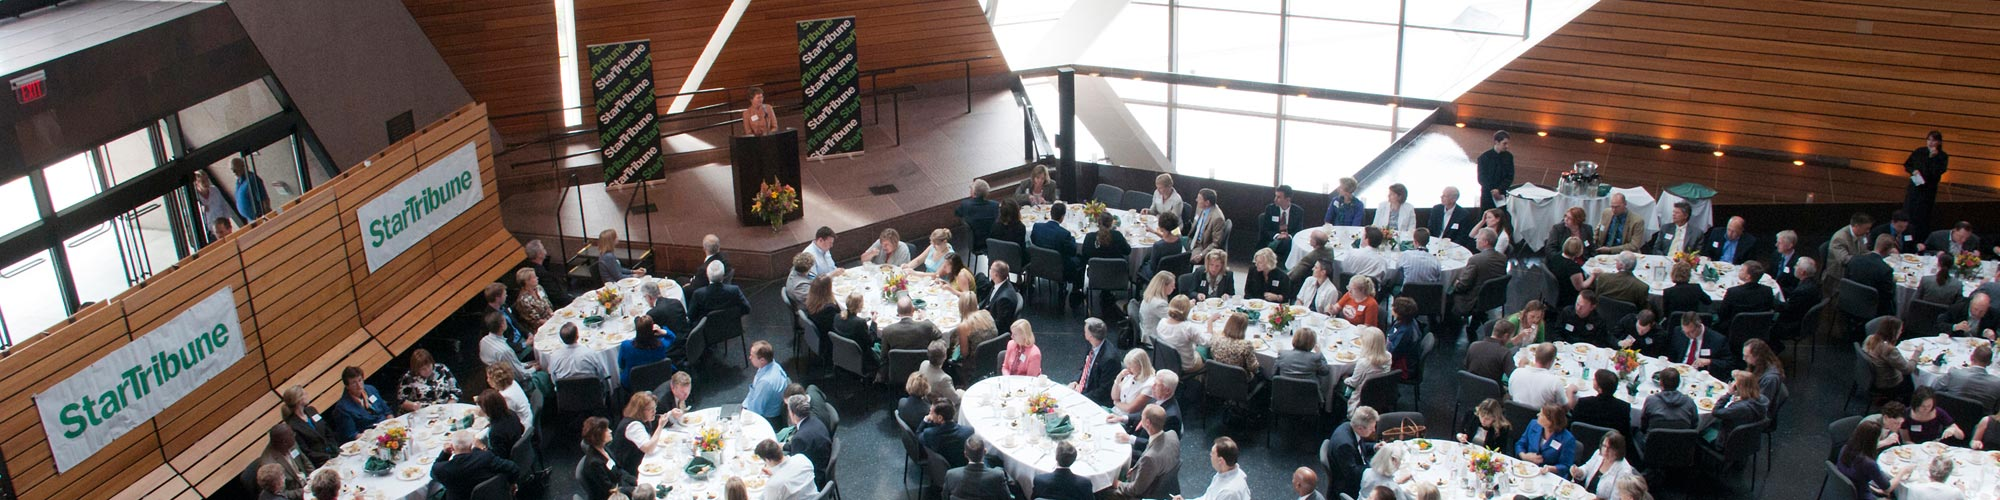 conference held at McNamara Alumni Center